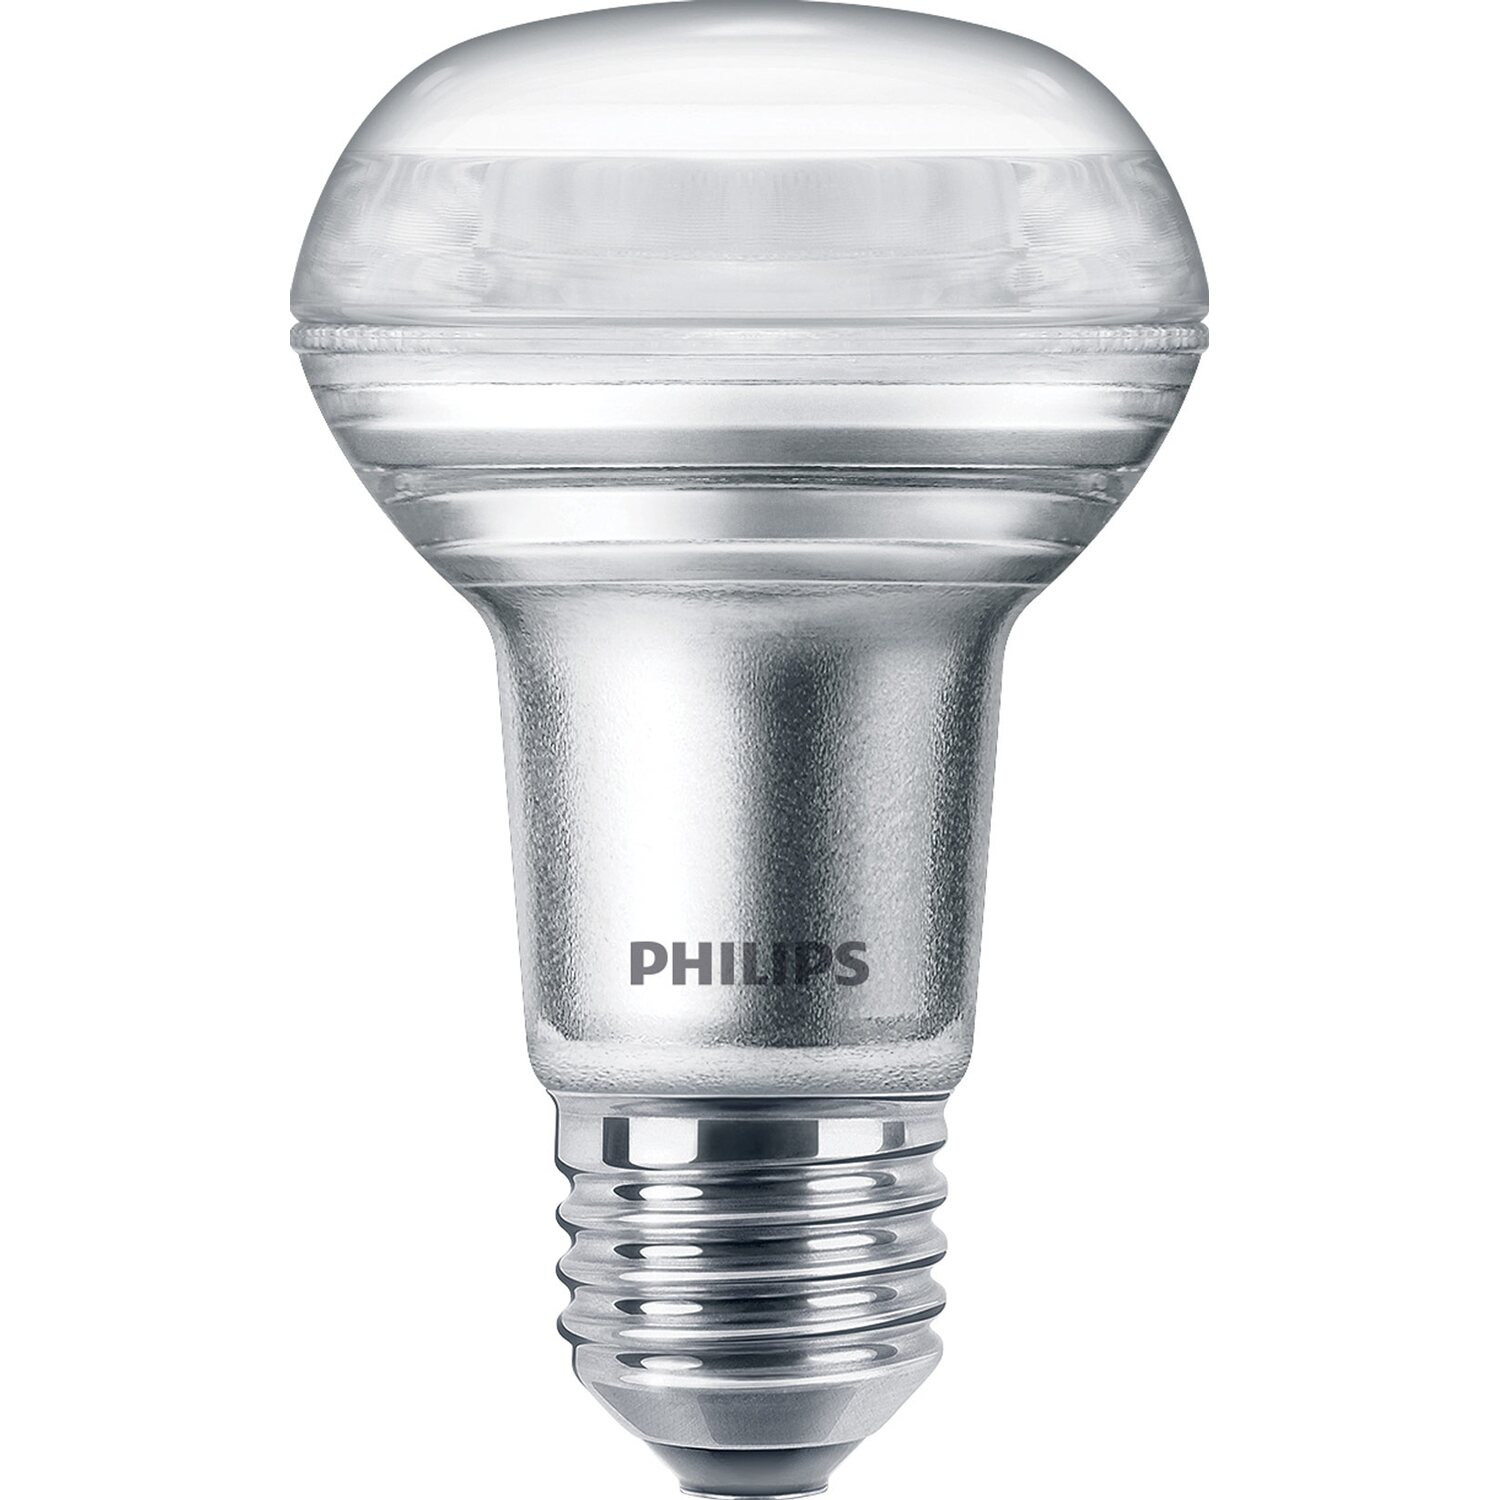 Turbo Philips LED-Lampe Reflektor R63 E27/3 W (255 lm) Warmweiß EEK: A++ BX52